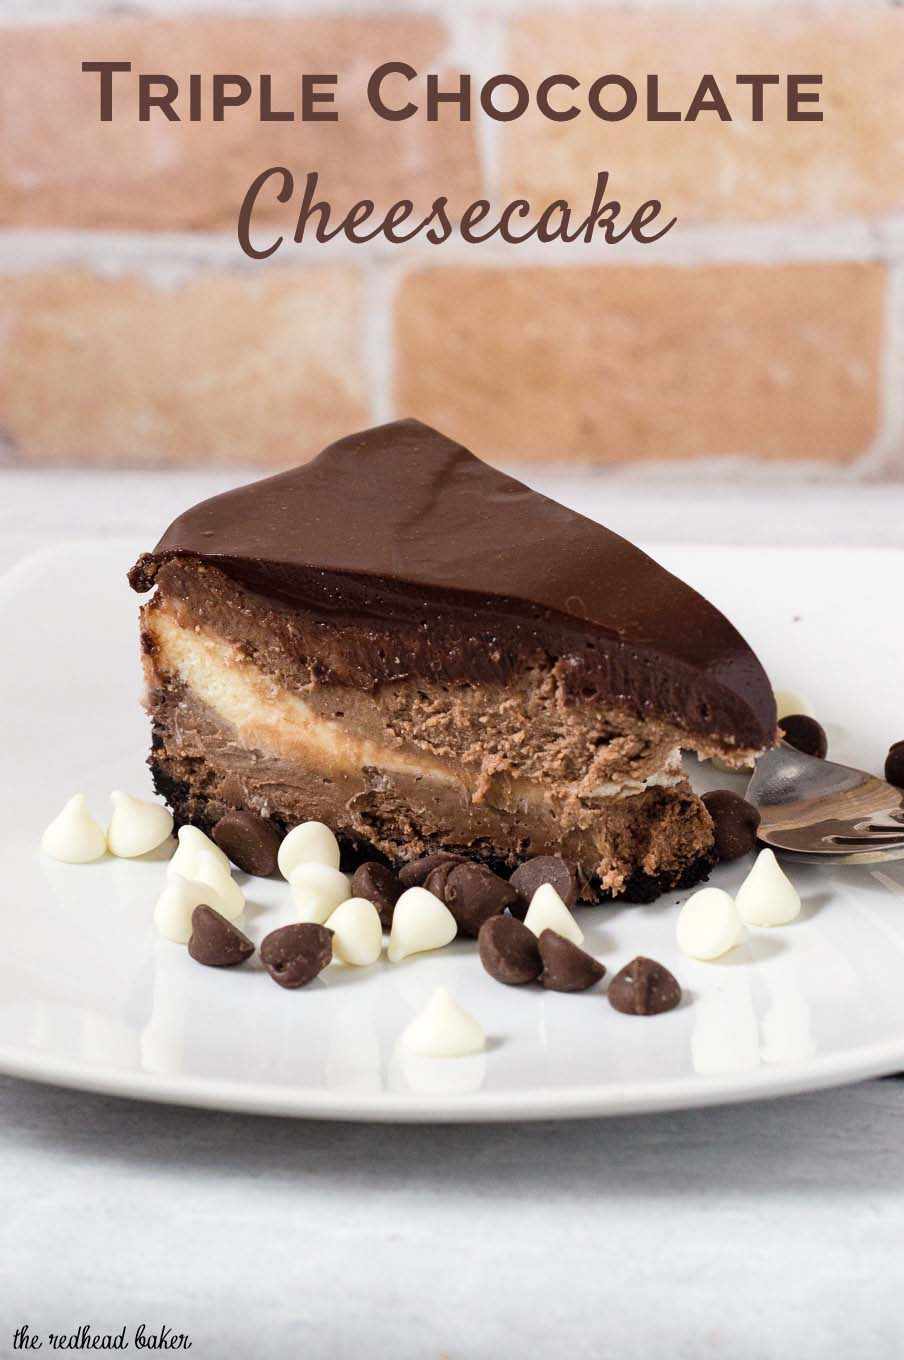 Triple Chocolate Cheesecake #Choctoberfest | The Redhead Baker